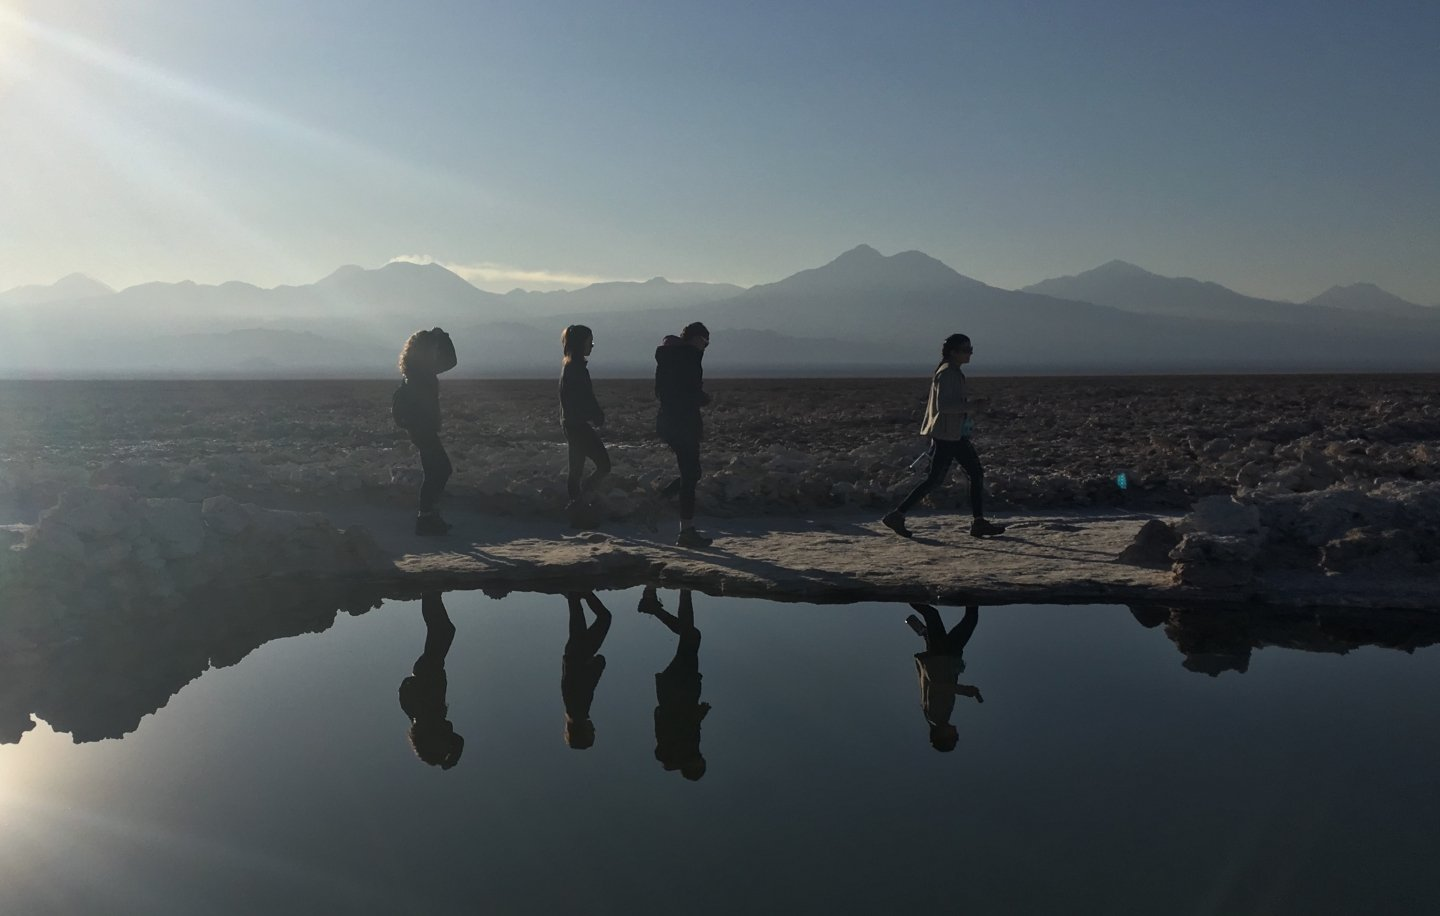 Four students walk in the desert, their reflections in a pool